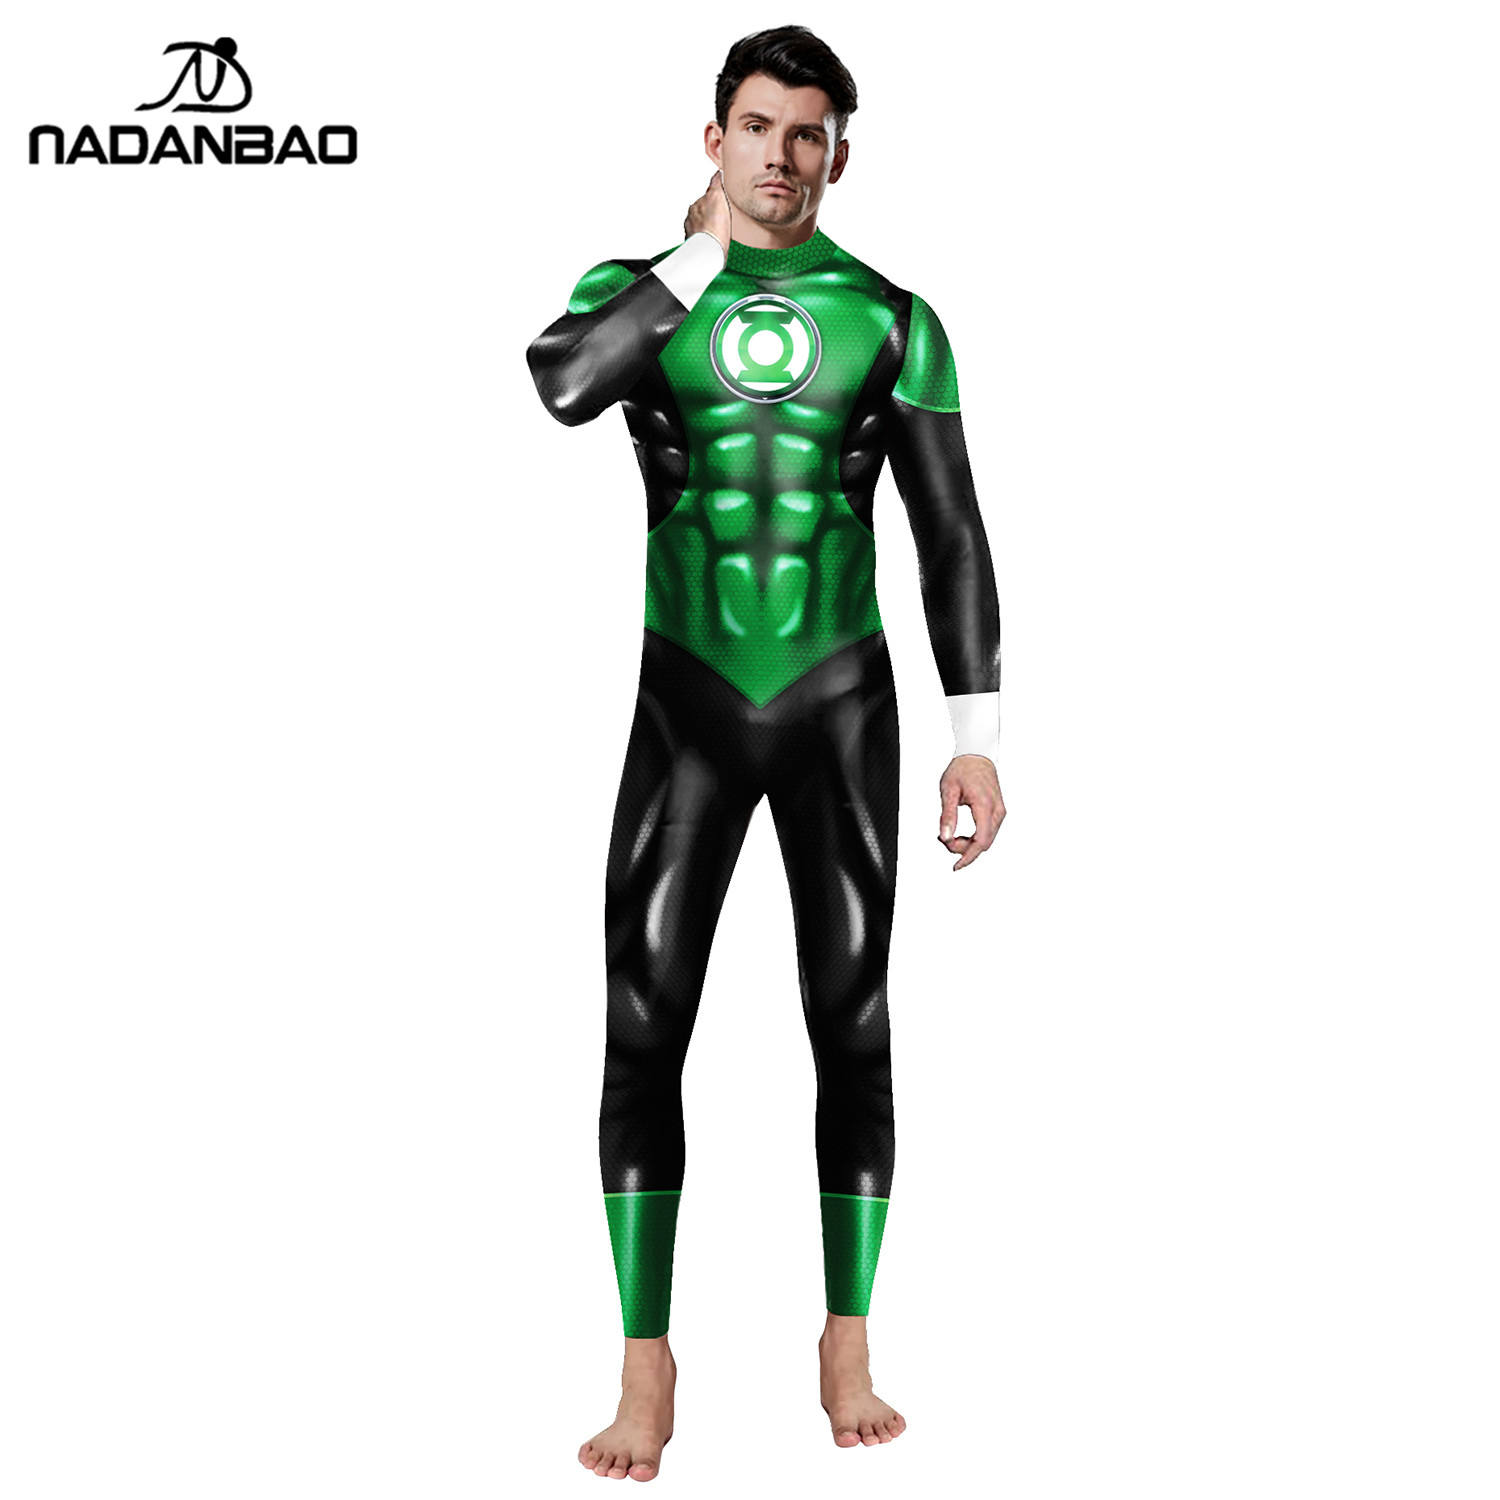 NADANBAO Brand 2020 Halloween Cosplay Costumes For Men Comic Movie Green Lantern Hero Jumpsuit Carnival Cosplay Costume